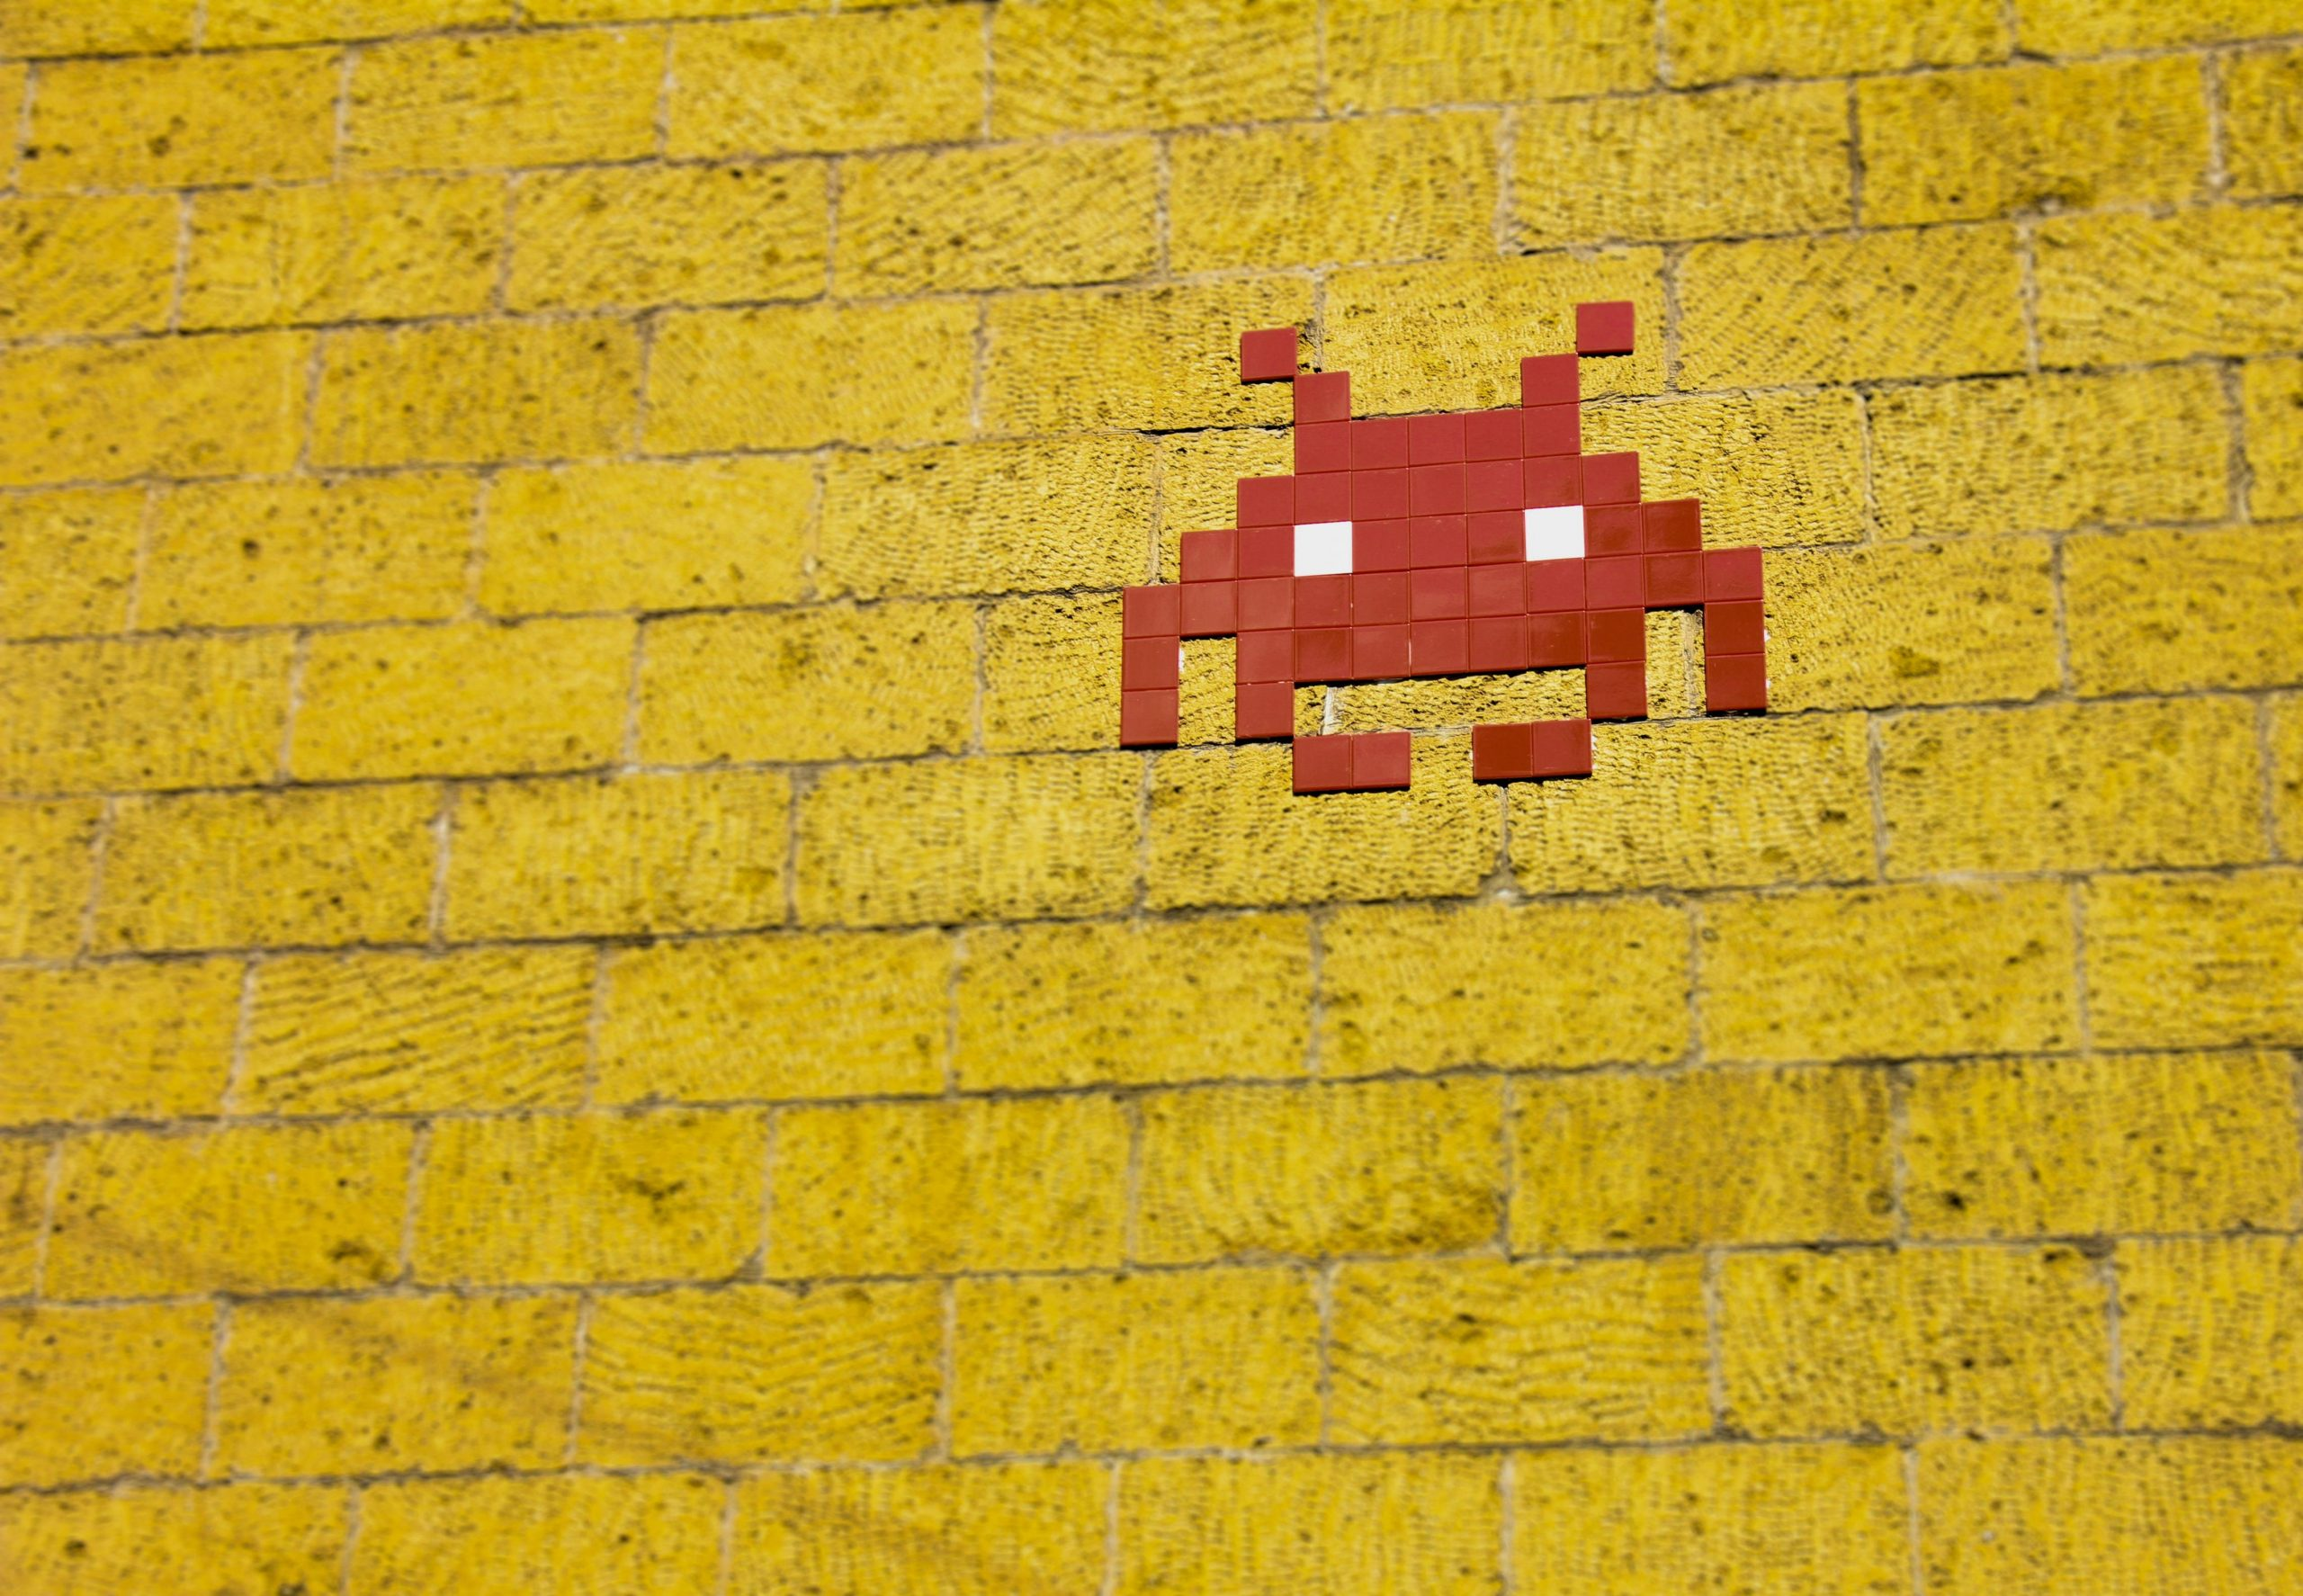 bitmapped red alien on a yellow brick wall